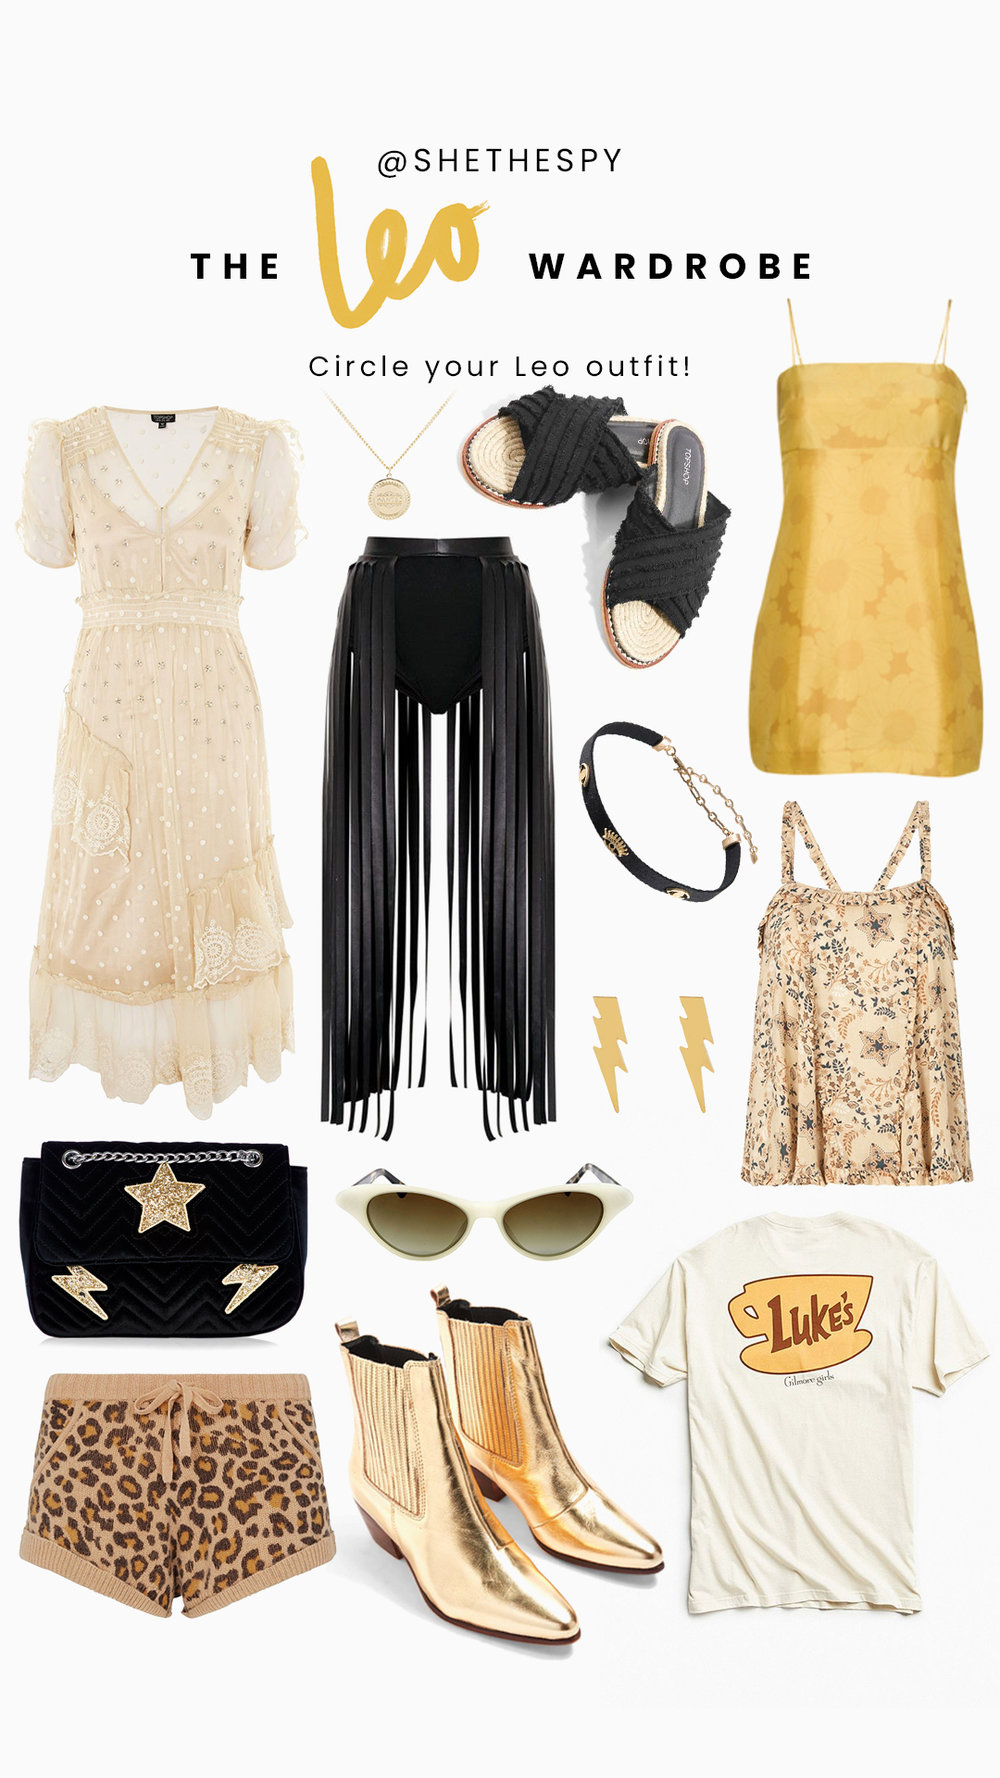 Shop Leo - Cream dress: TopshopNecklace: Skinny DipSlides: TopshopYellow dress: Realisation ParSkirt: Similar from Beginning BoutiqueChoker: UnknownEarrings: Skinny DipBag: Skinny DipSunglasses: ShevokeBoots: TopshopPrinted top: SpellShorts: SpellTee: Urban Outfitters